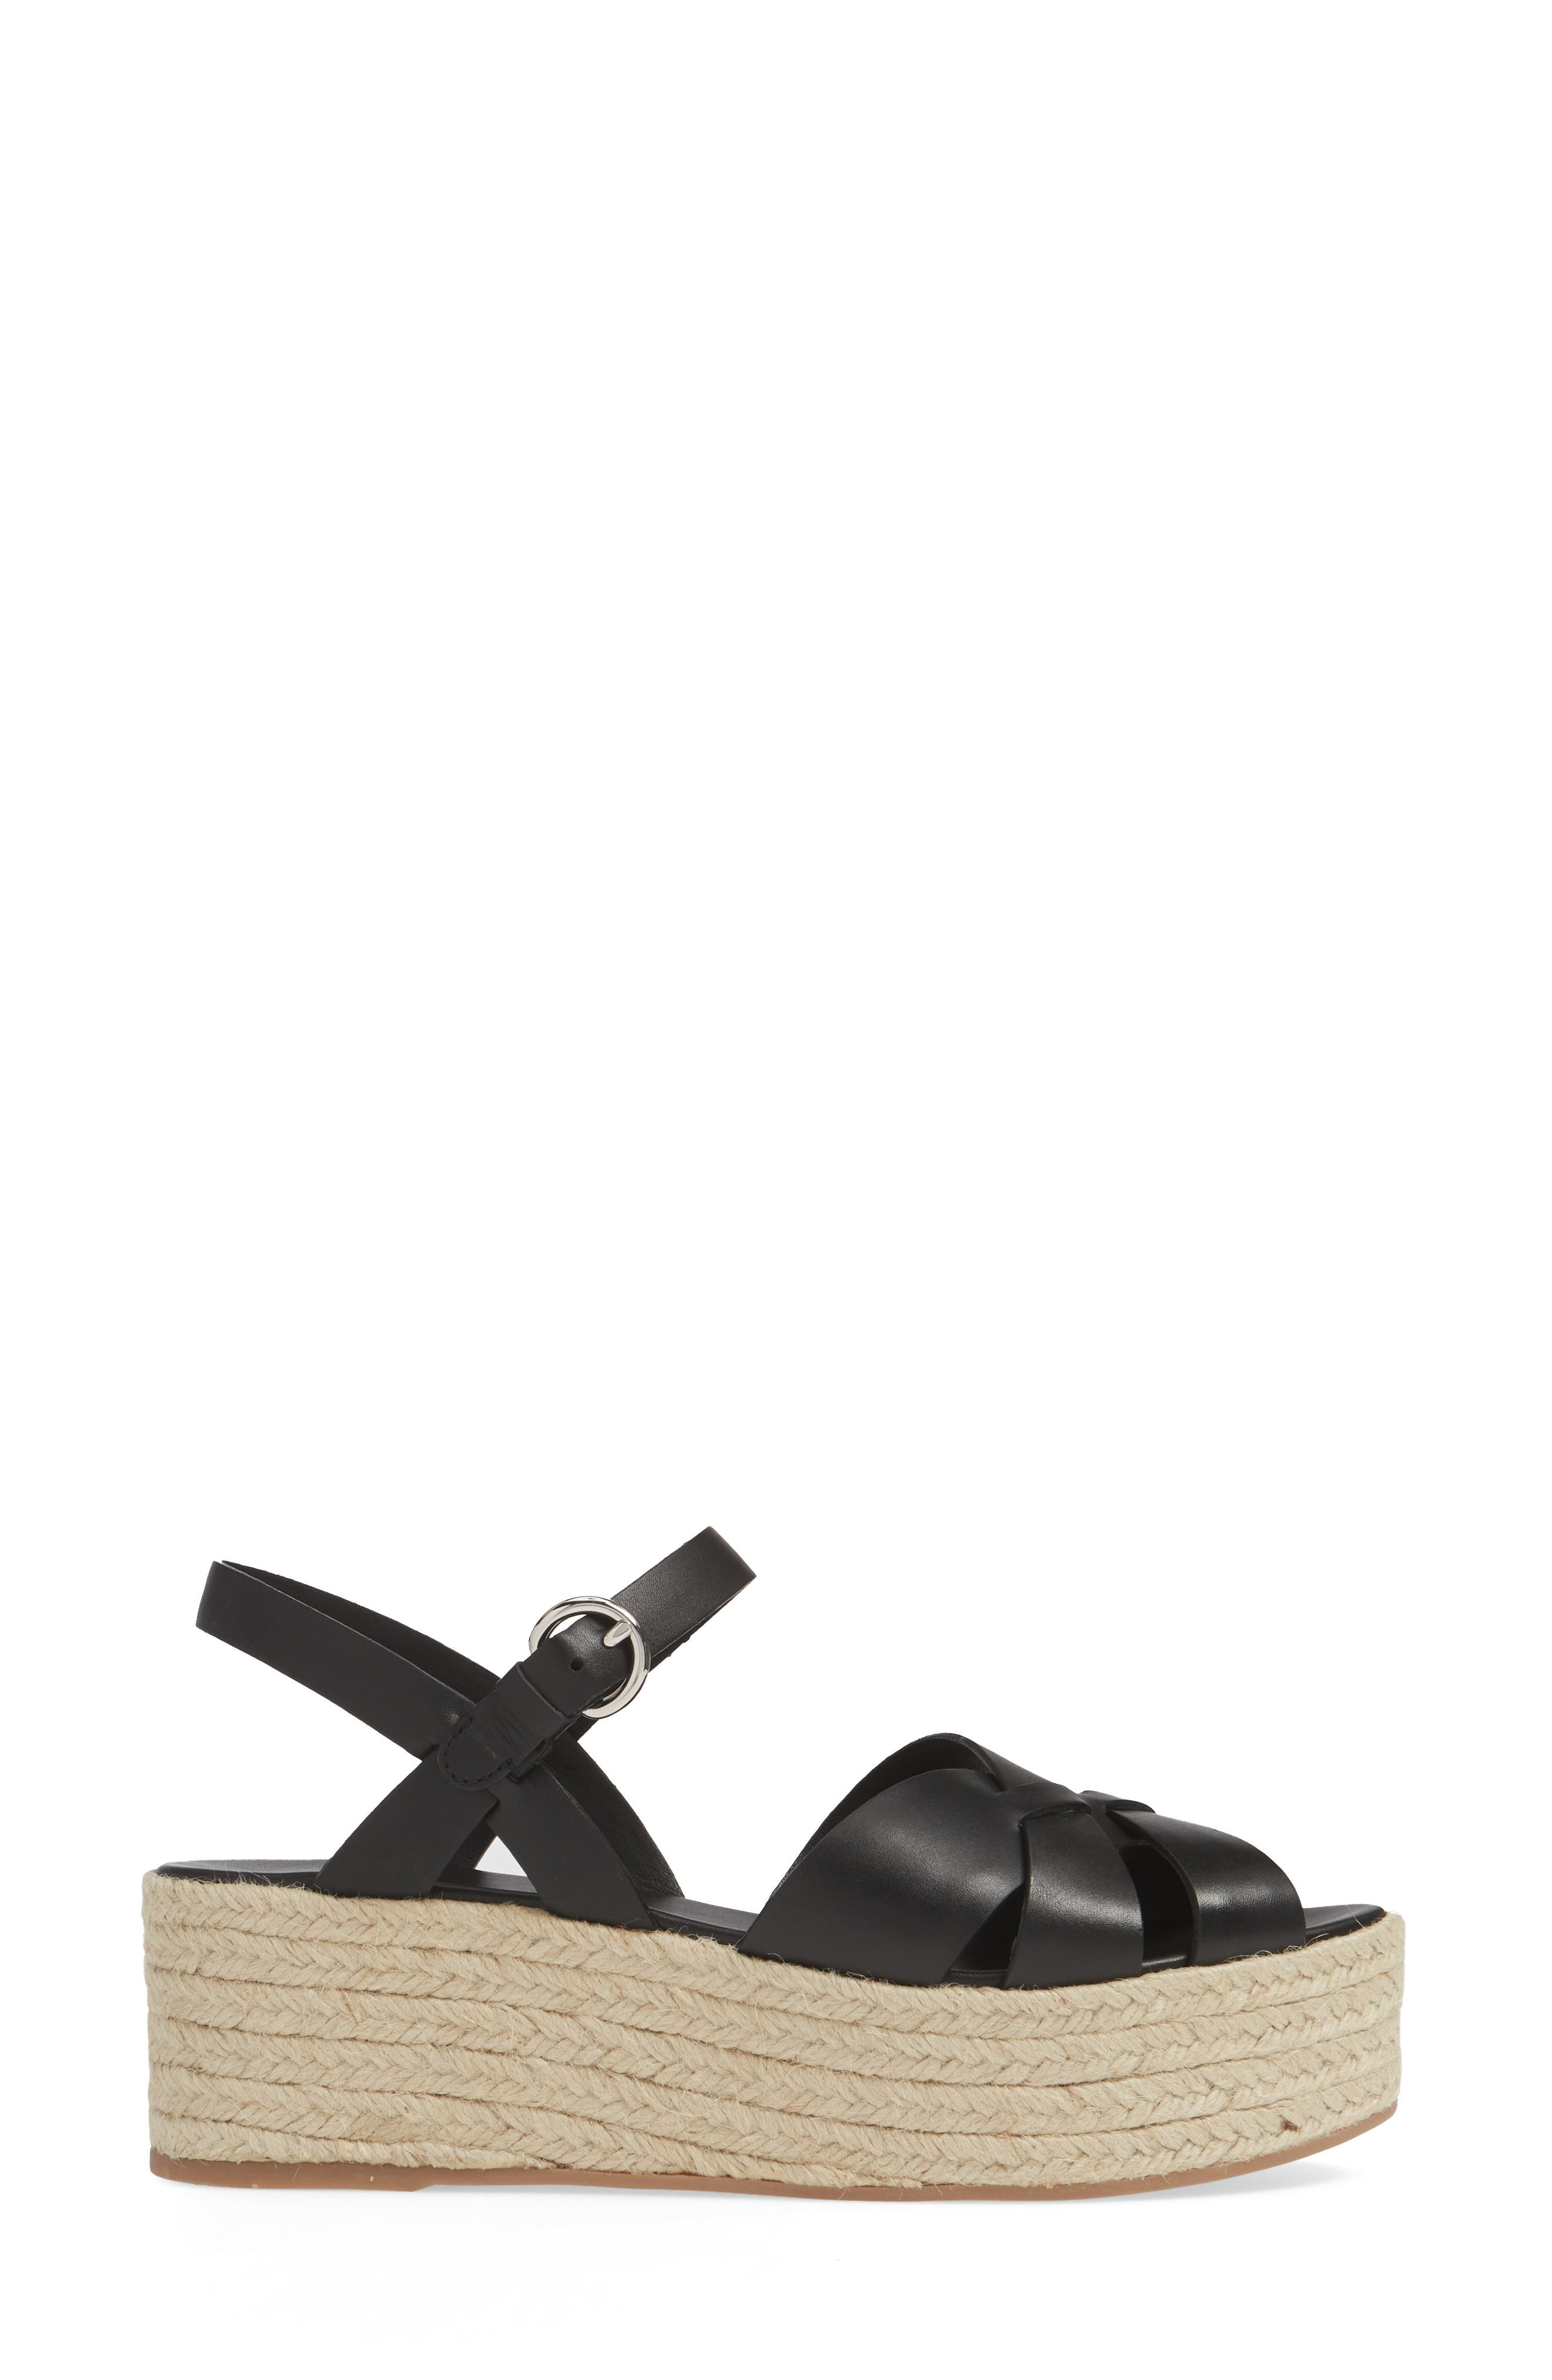 PRADA, Platform Espadrille Sandal, Alternate thumbnail 3, color, BLACK